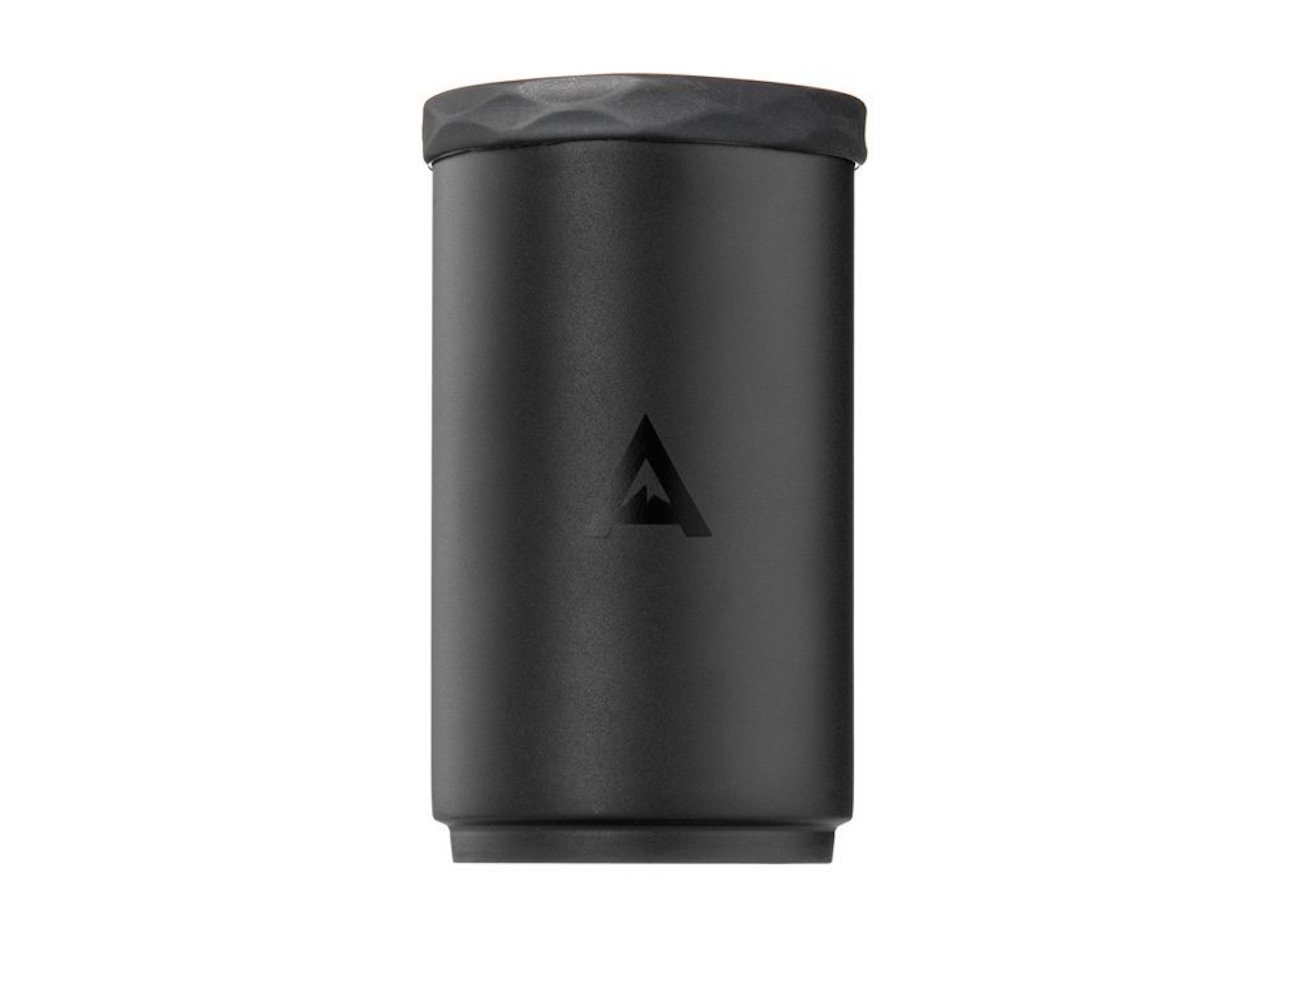 Arctican – Stainless Steel Can Cooler by Corkcicle